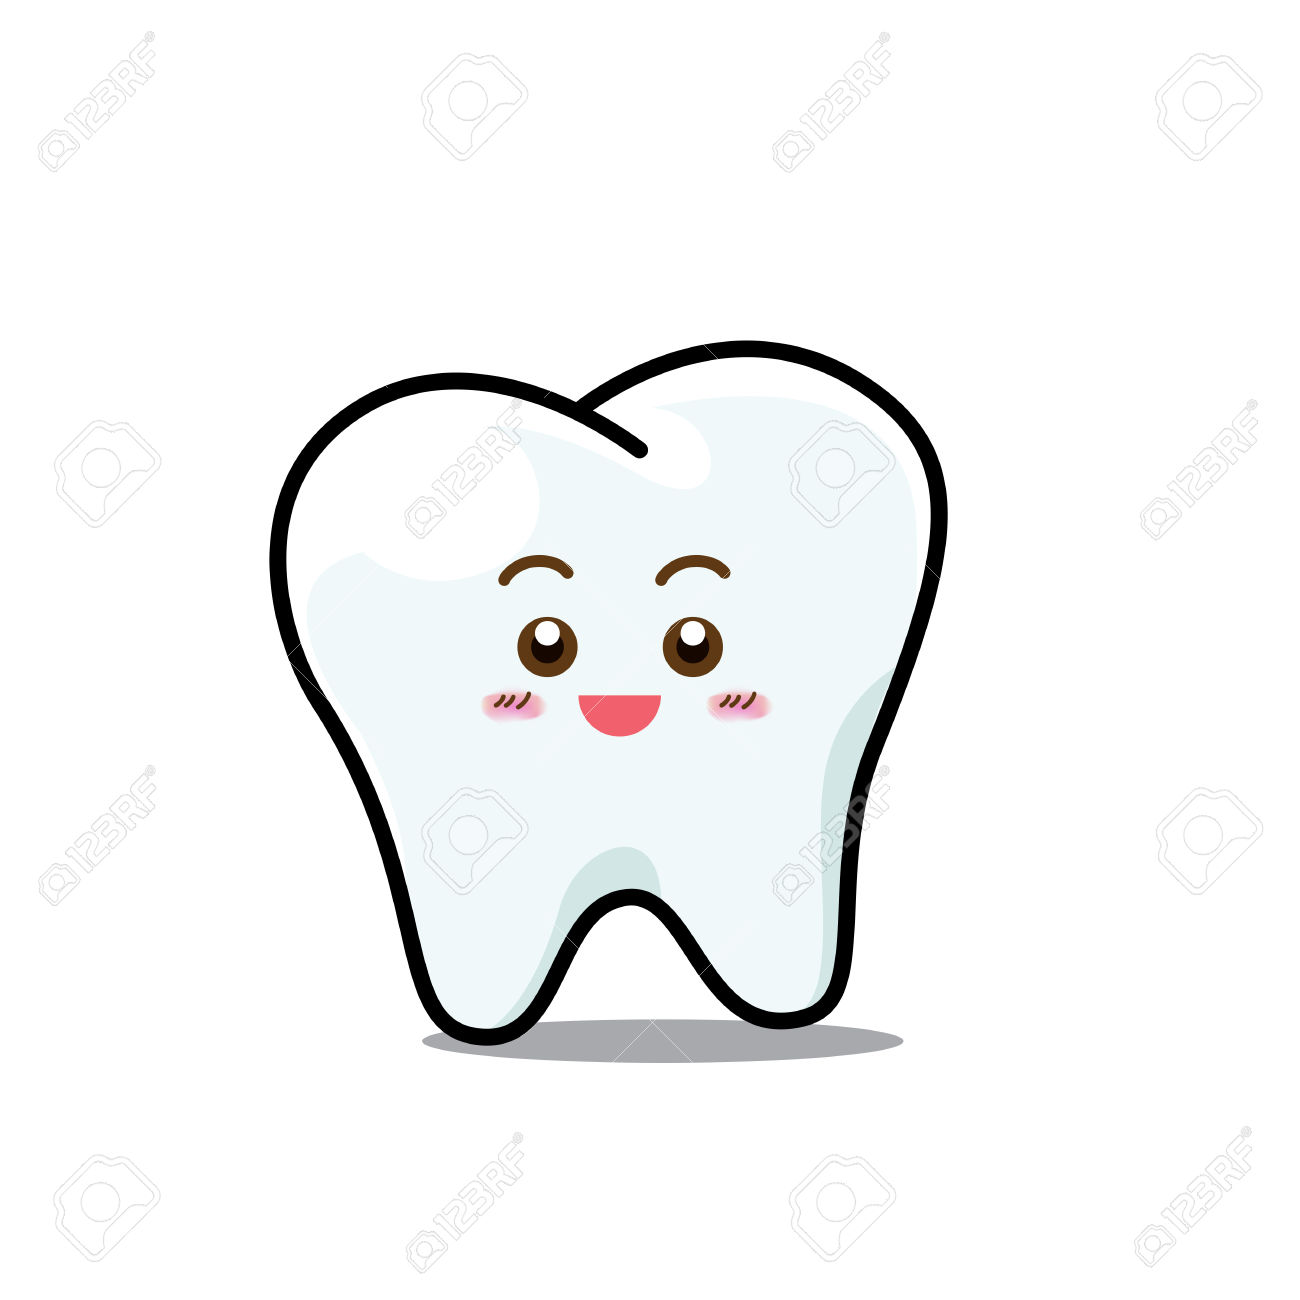 Face Hand Mouth additionally 1619 also Face Parts Clipart additionally Using Emojis At Work Can Boost Your Reputationor Destroy It Heres How To Know Which together with Act 4 Creacion Literaria Con Y Para Los. on animated smiley mouth